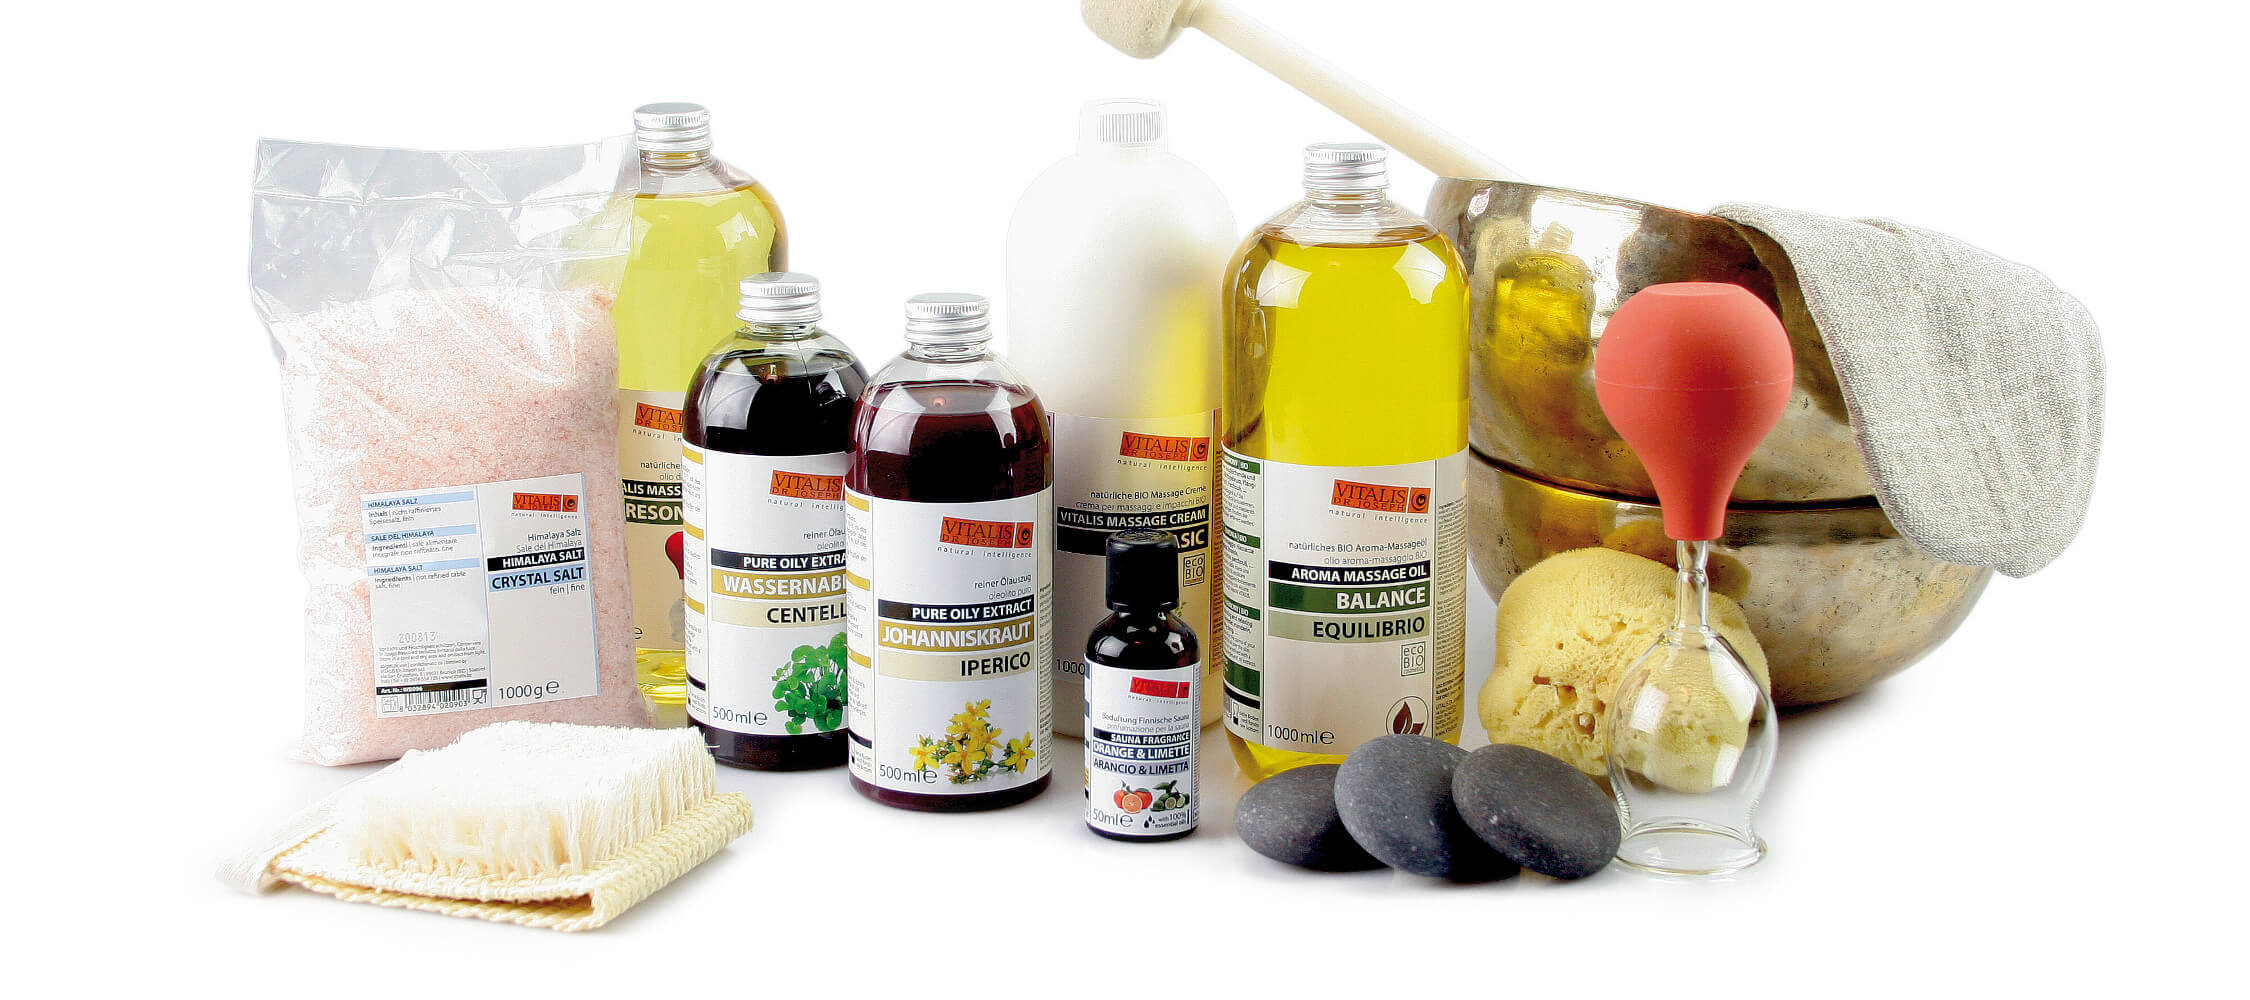 City_Hotel_Merano_Spa_Massage_oil_Products_Vitalis_Dr_Josef_06_2250x1000